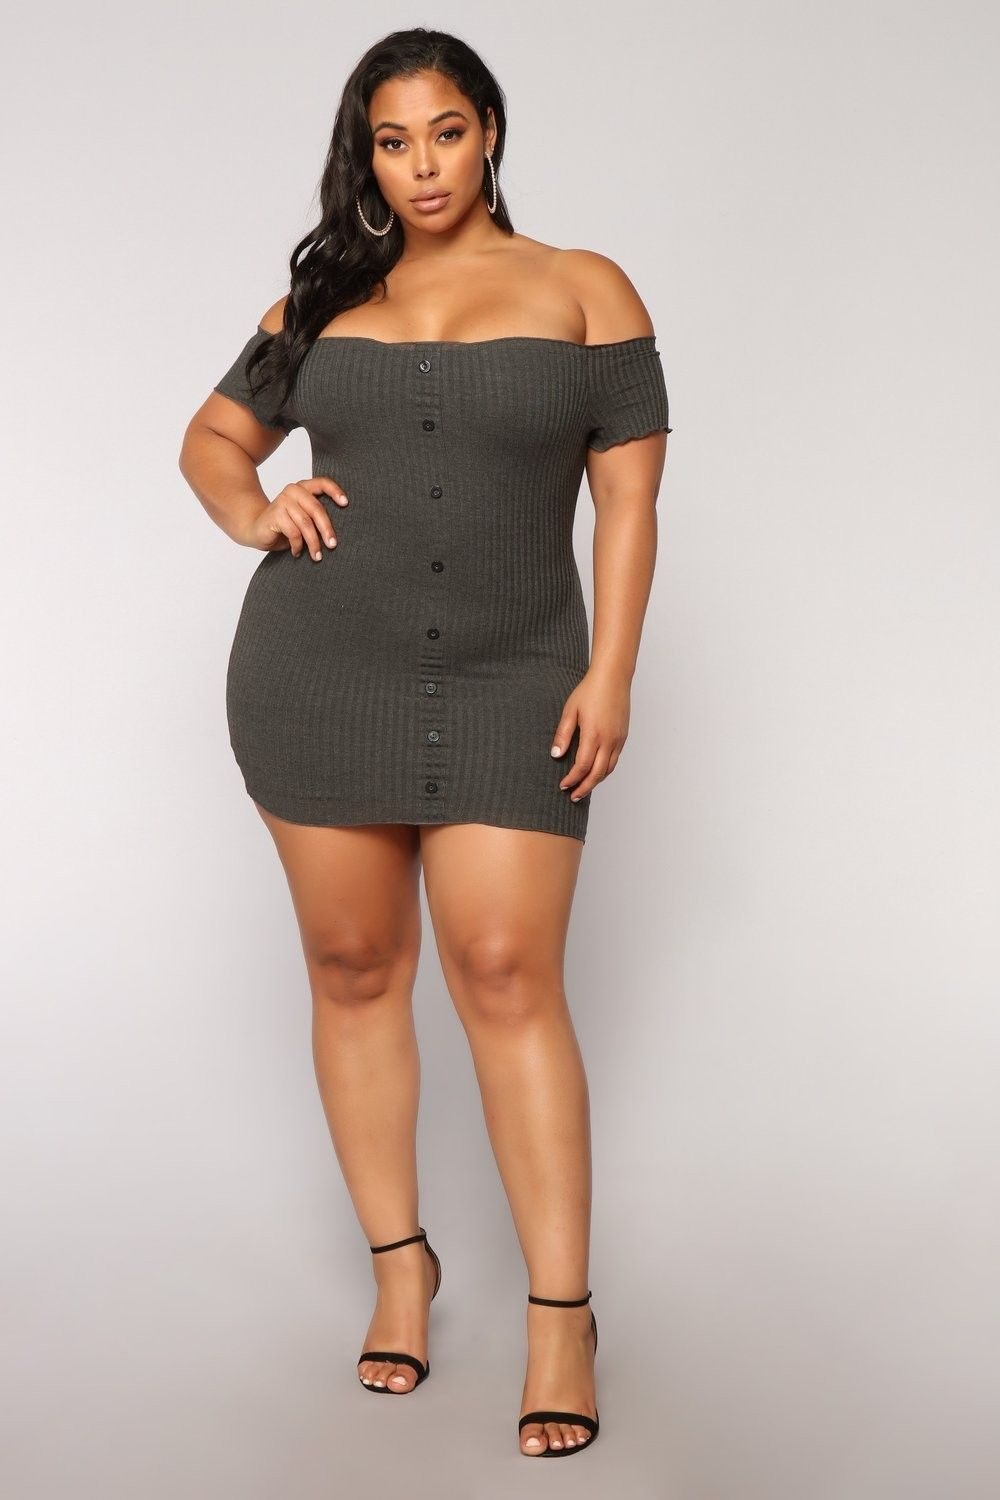 d7063fcdc Plus Size Katherine Off Shoulder Mini Dress - Charcoal  27.99  fashion  ootd   outfit